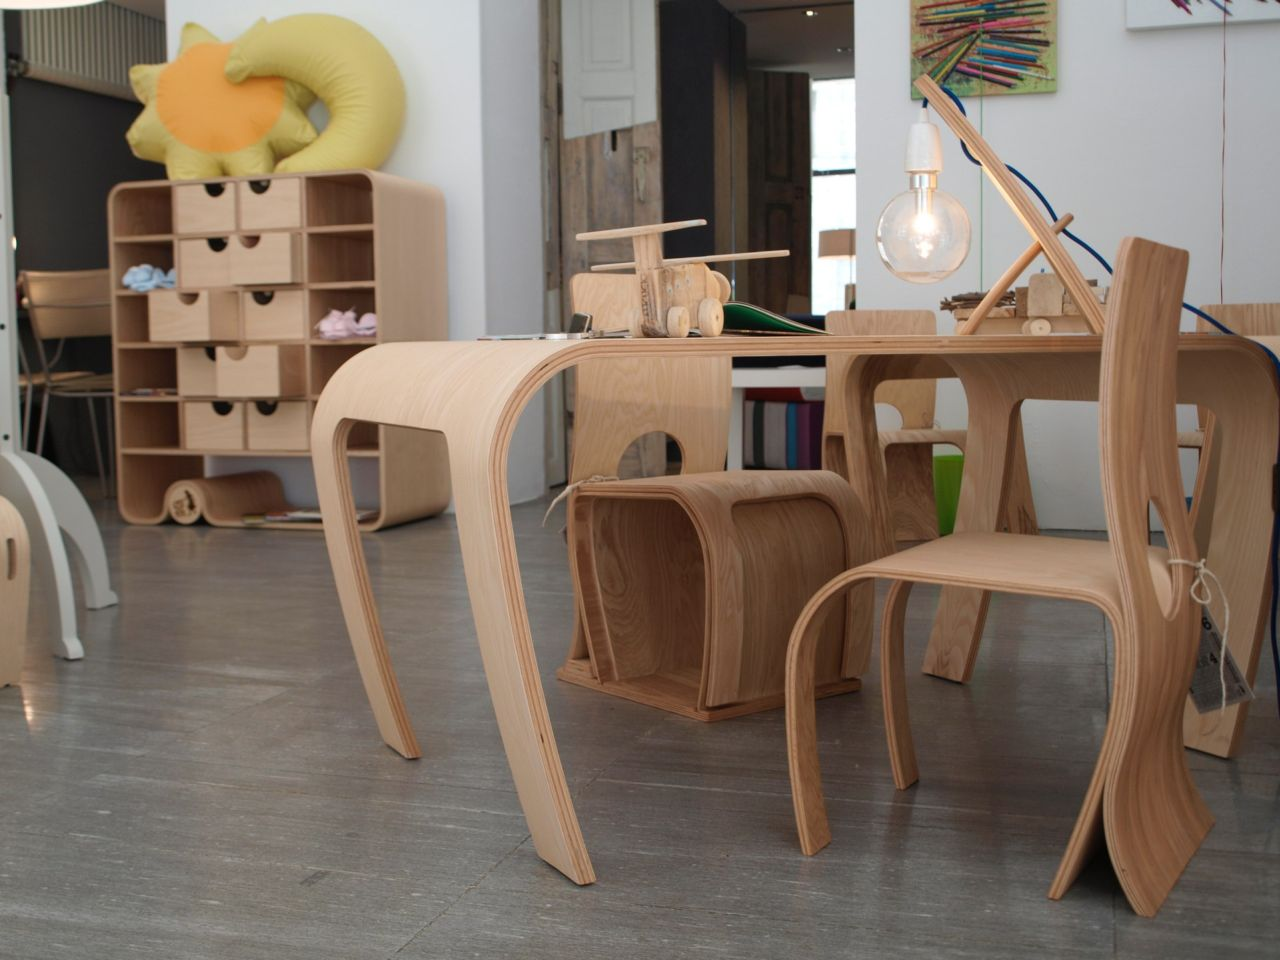 Flowerssori, kids' furniture. Shown during an event planned to showcase handcrafted furniture, looking at design through a kid's perspective.